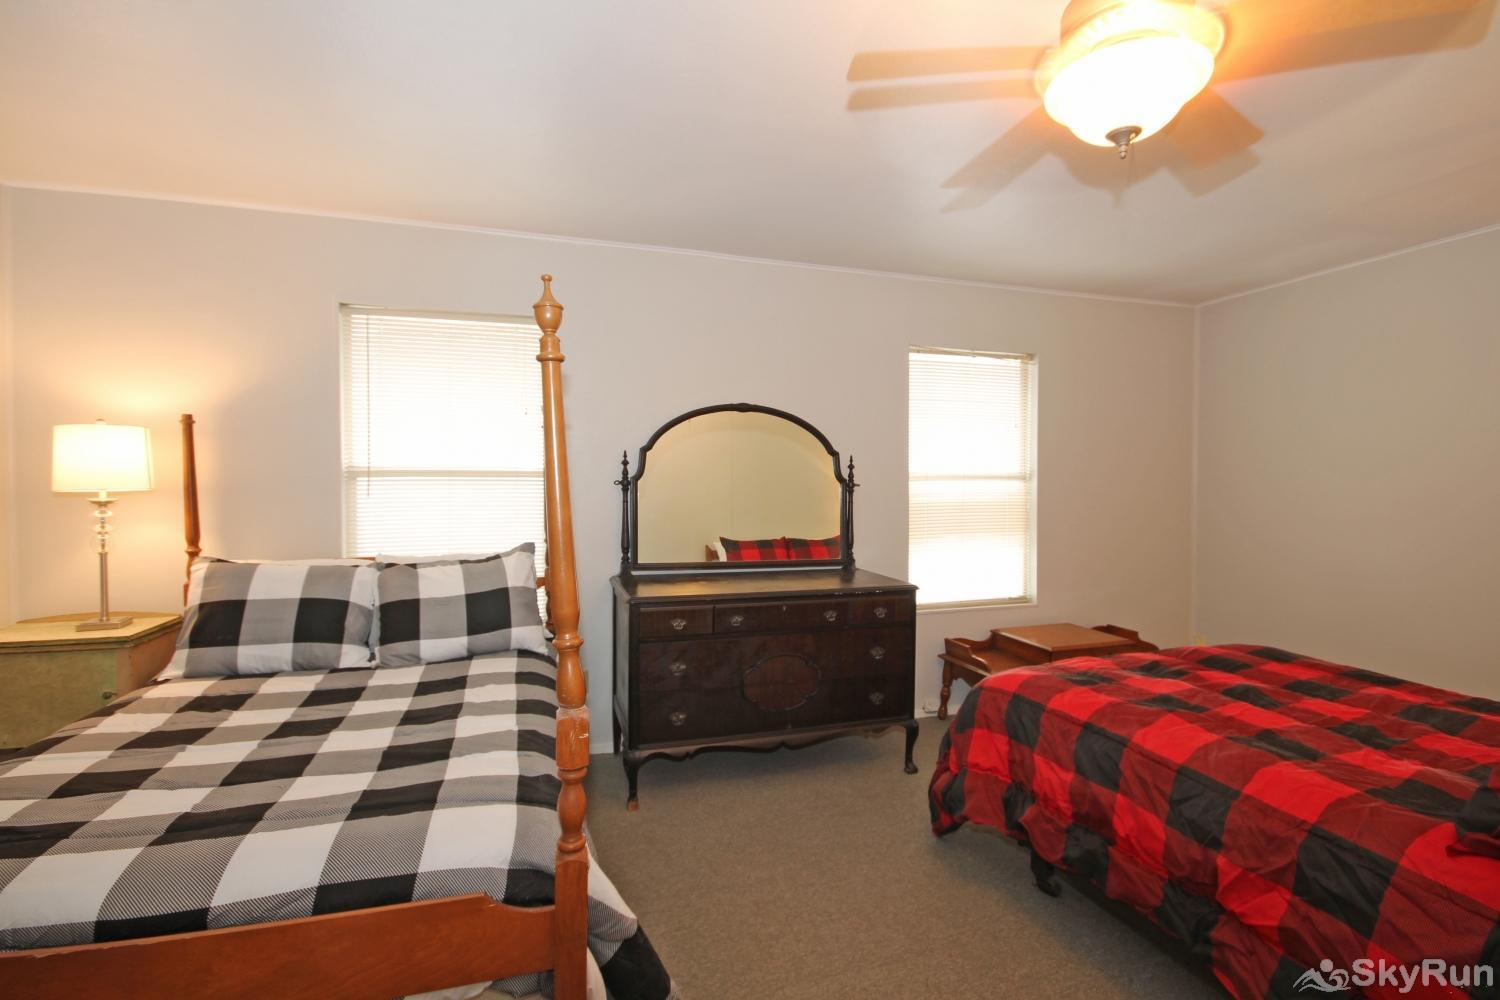 HONDO'S RIVER HAUS Third bedroom with two queen beds